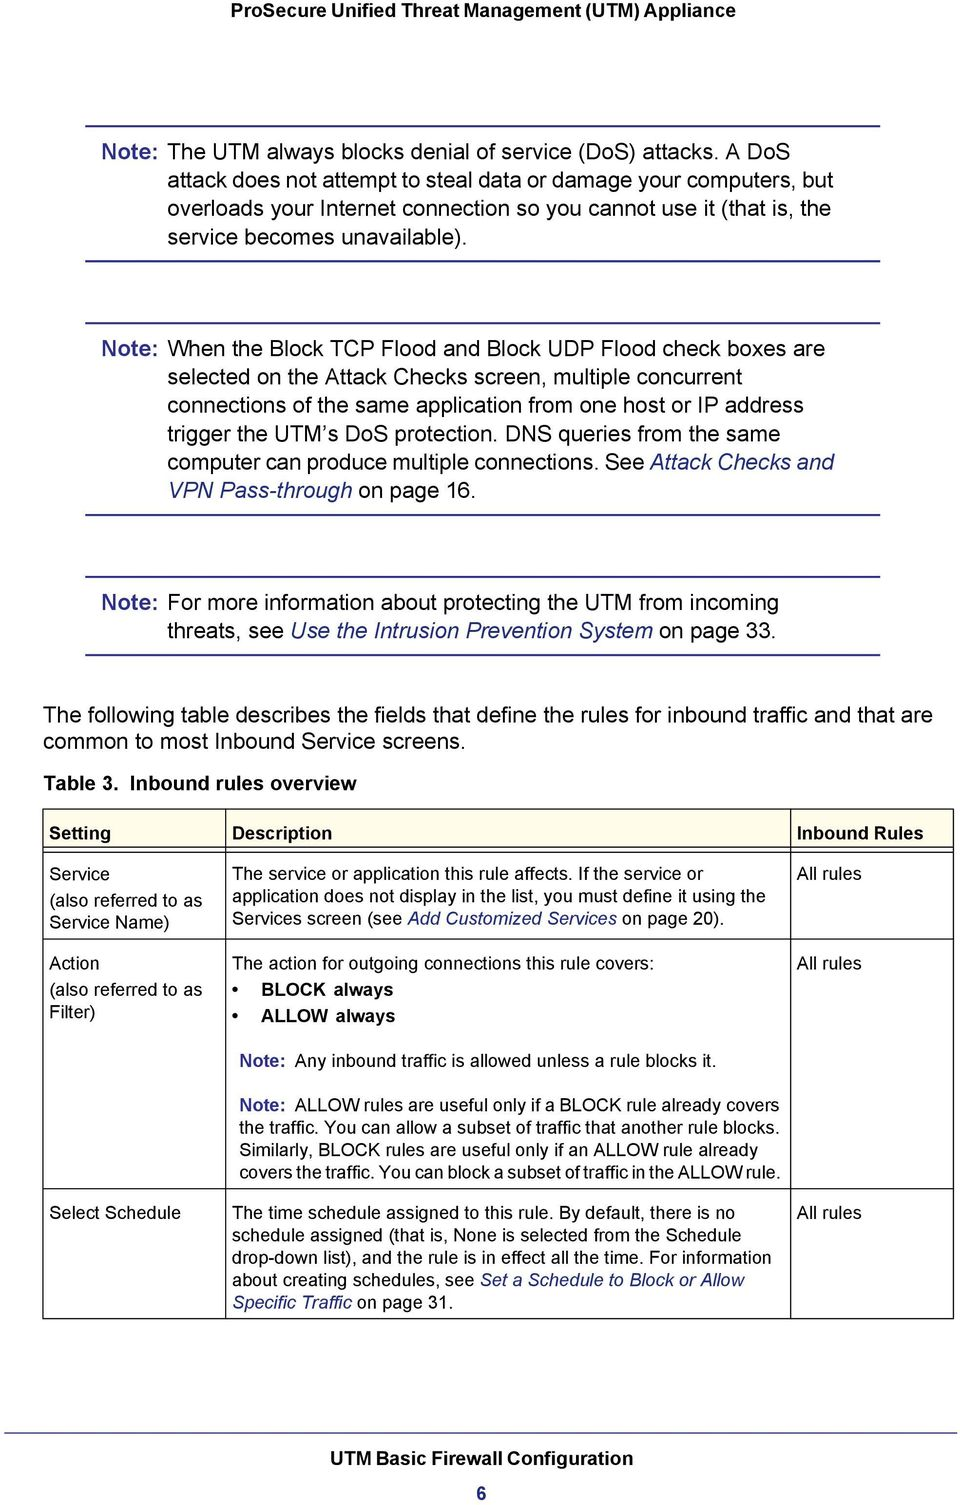 Note: When the Block TCP Flood and Block UDP Flood check boxes are selected on the Attack Checks screen, multiple concurrent connections of the same application from one host or IP address trigger